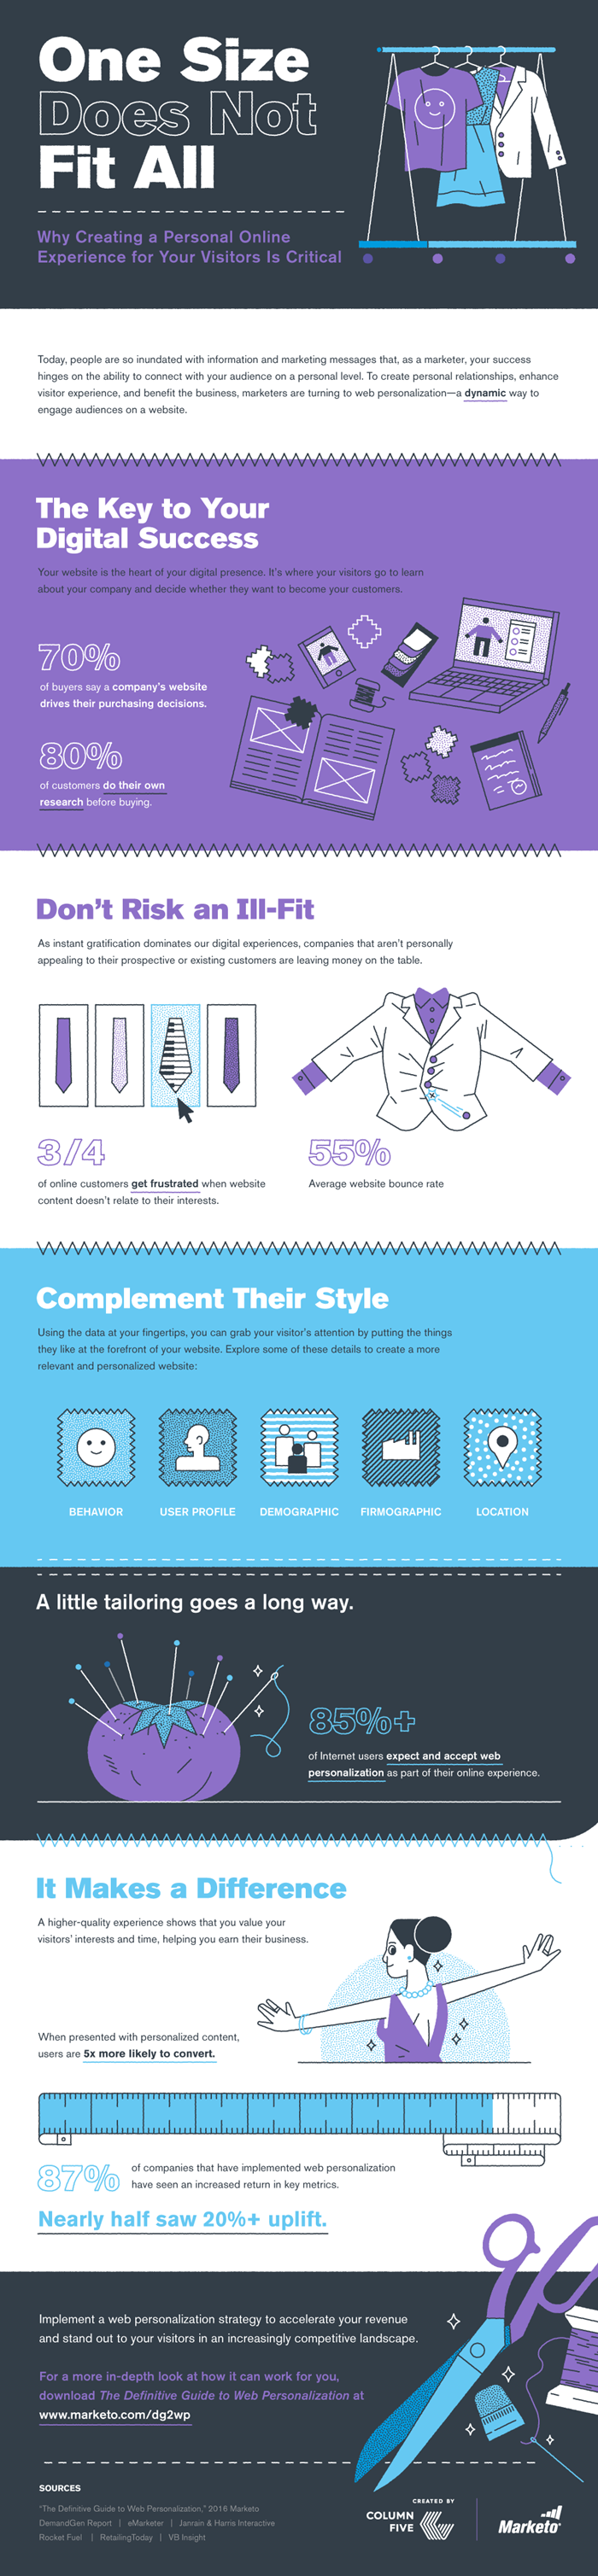 One-Size-Does-Not-Fit-All_Web-Personalization_Marketo_Infographic-700